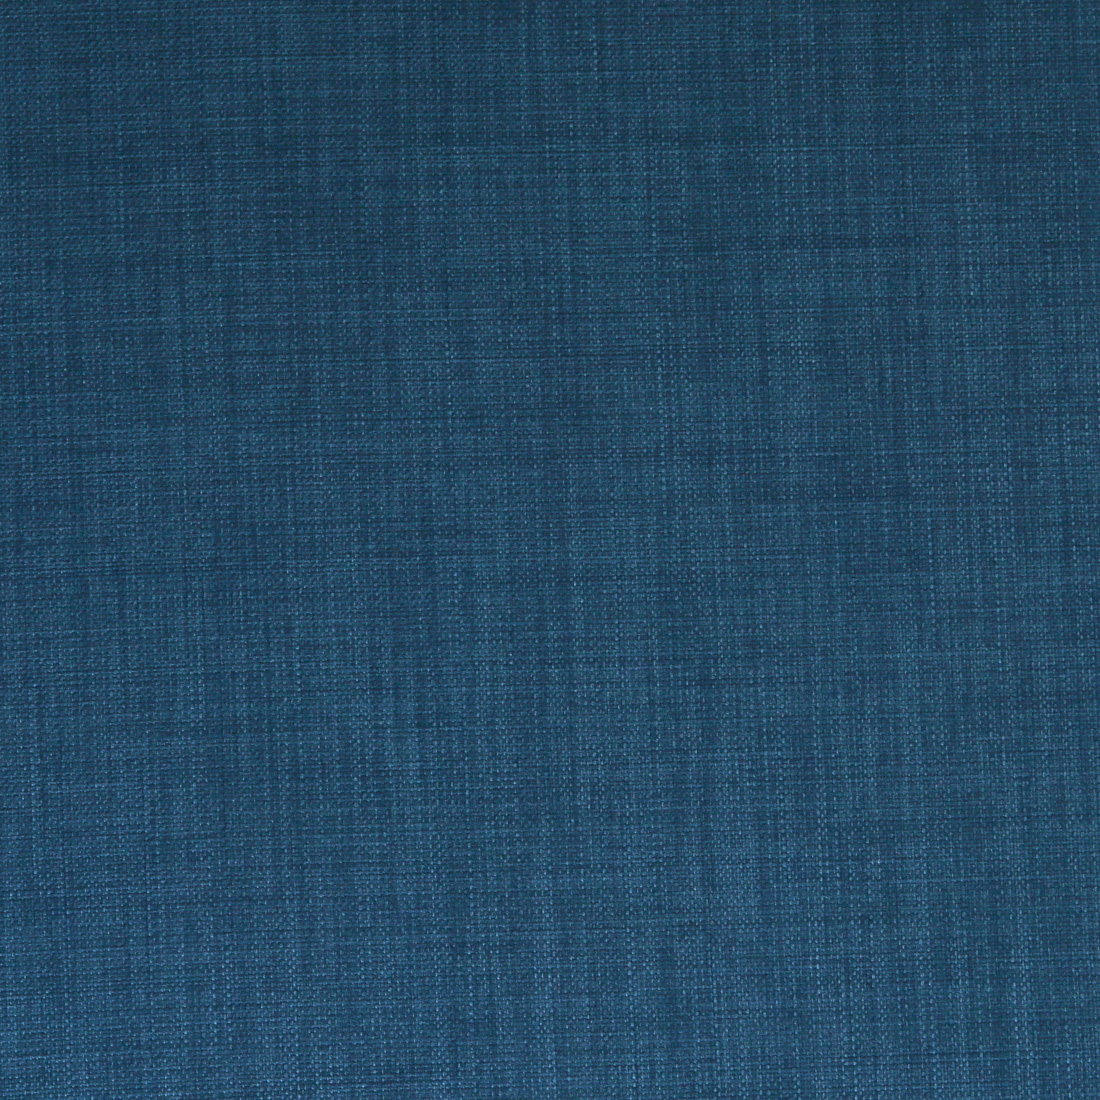 Linoso Denim Upholstery Fabric